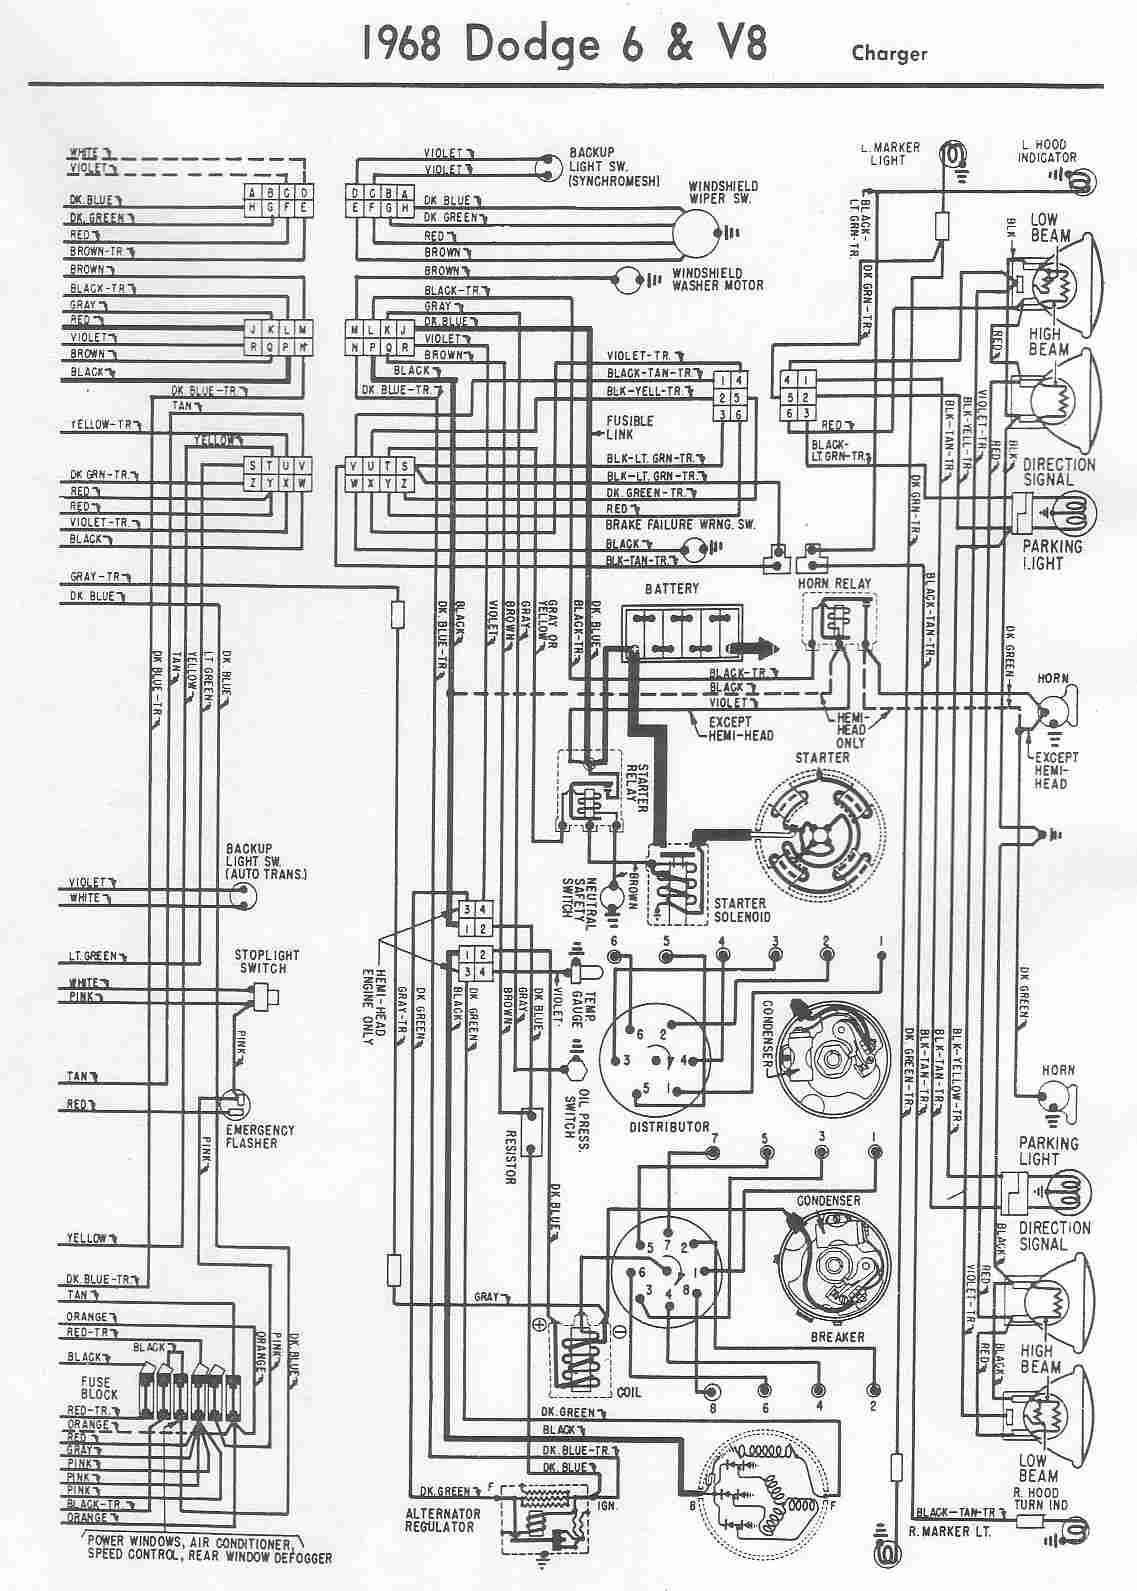 1978 Dodge Power Wagon Wiring Diagram Another Blog About 1977 Warlock Car Manuals Diagrams Pdf Fault Codes Rh Automotive Net